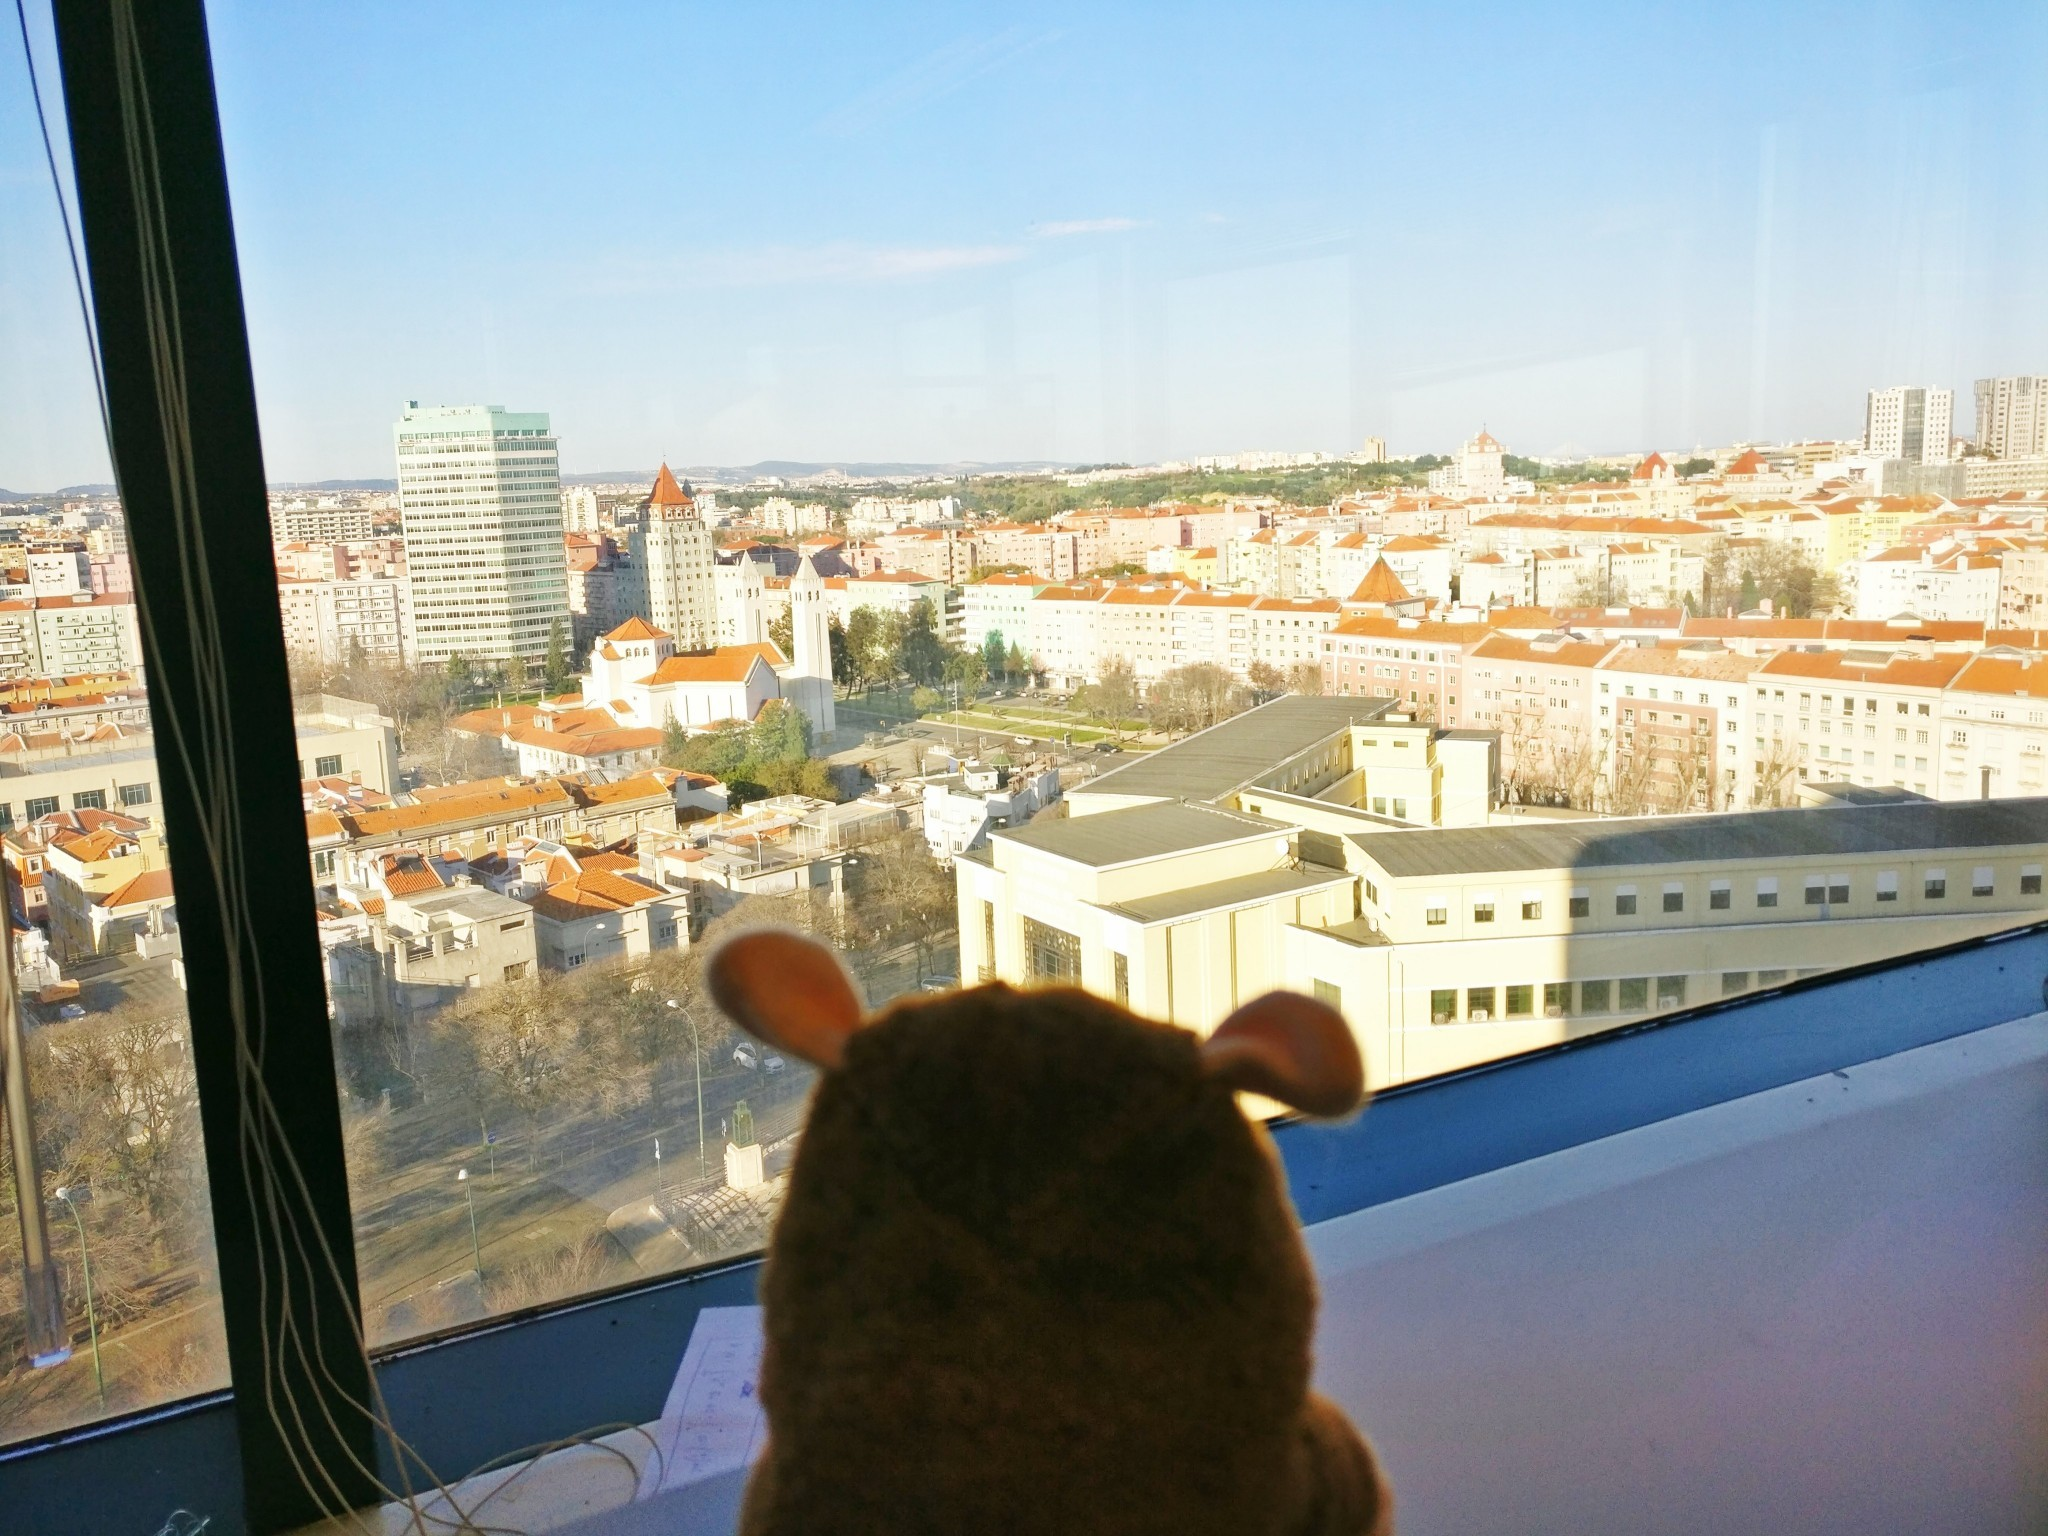 Hamster is enyoing its view out of the window of the Instituto Superior Técnico in Lisbon.